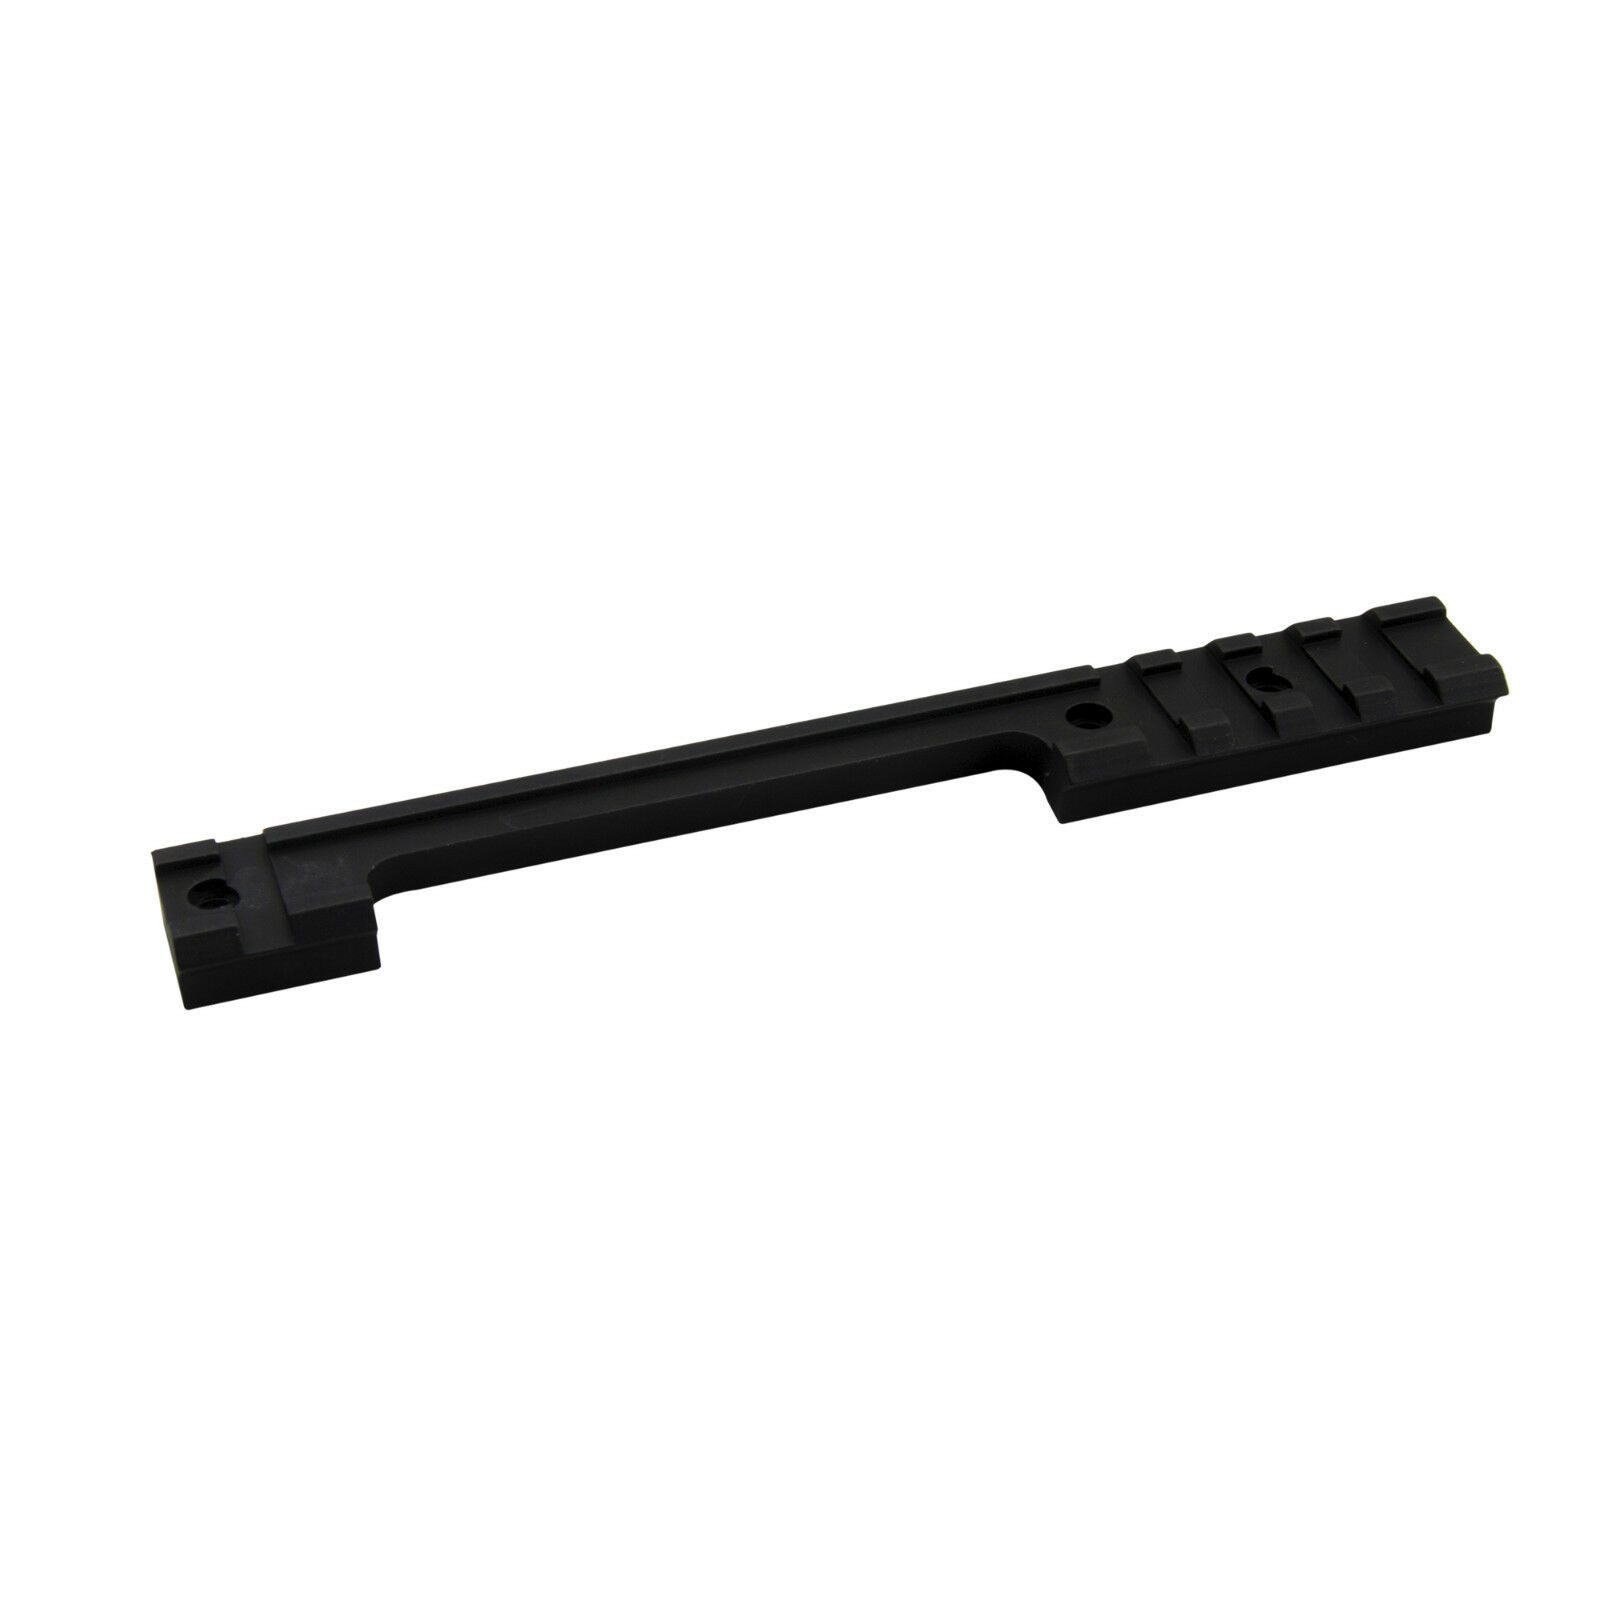 CCOP USA Picatinny Steel Scope Mount for Brauning A-Bolt Long Action PB-BRN002